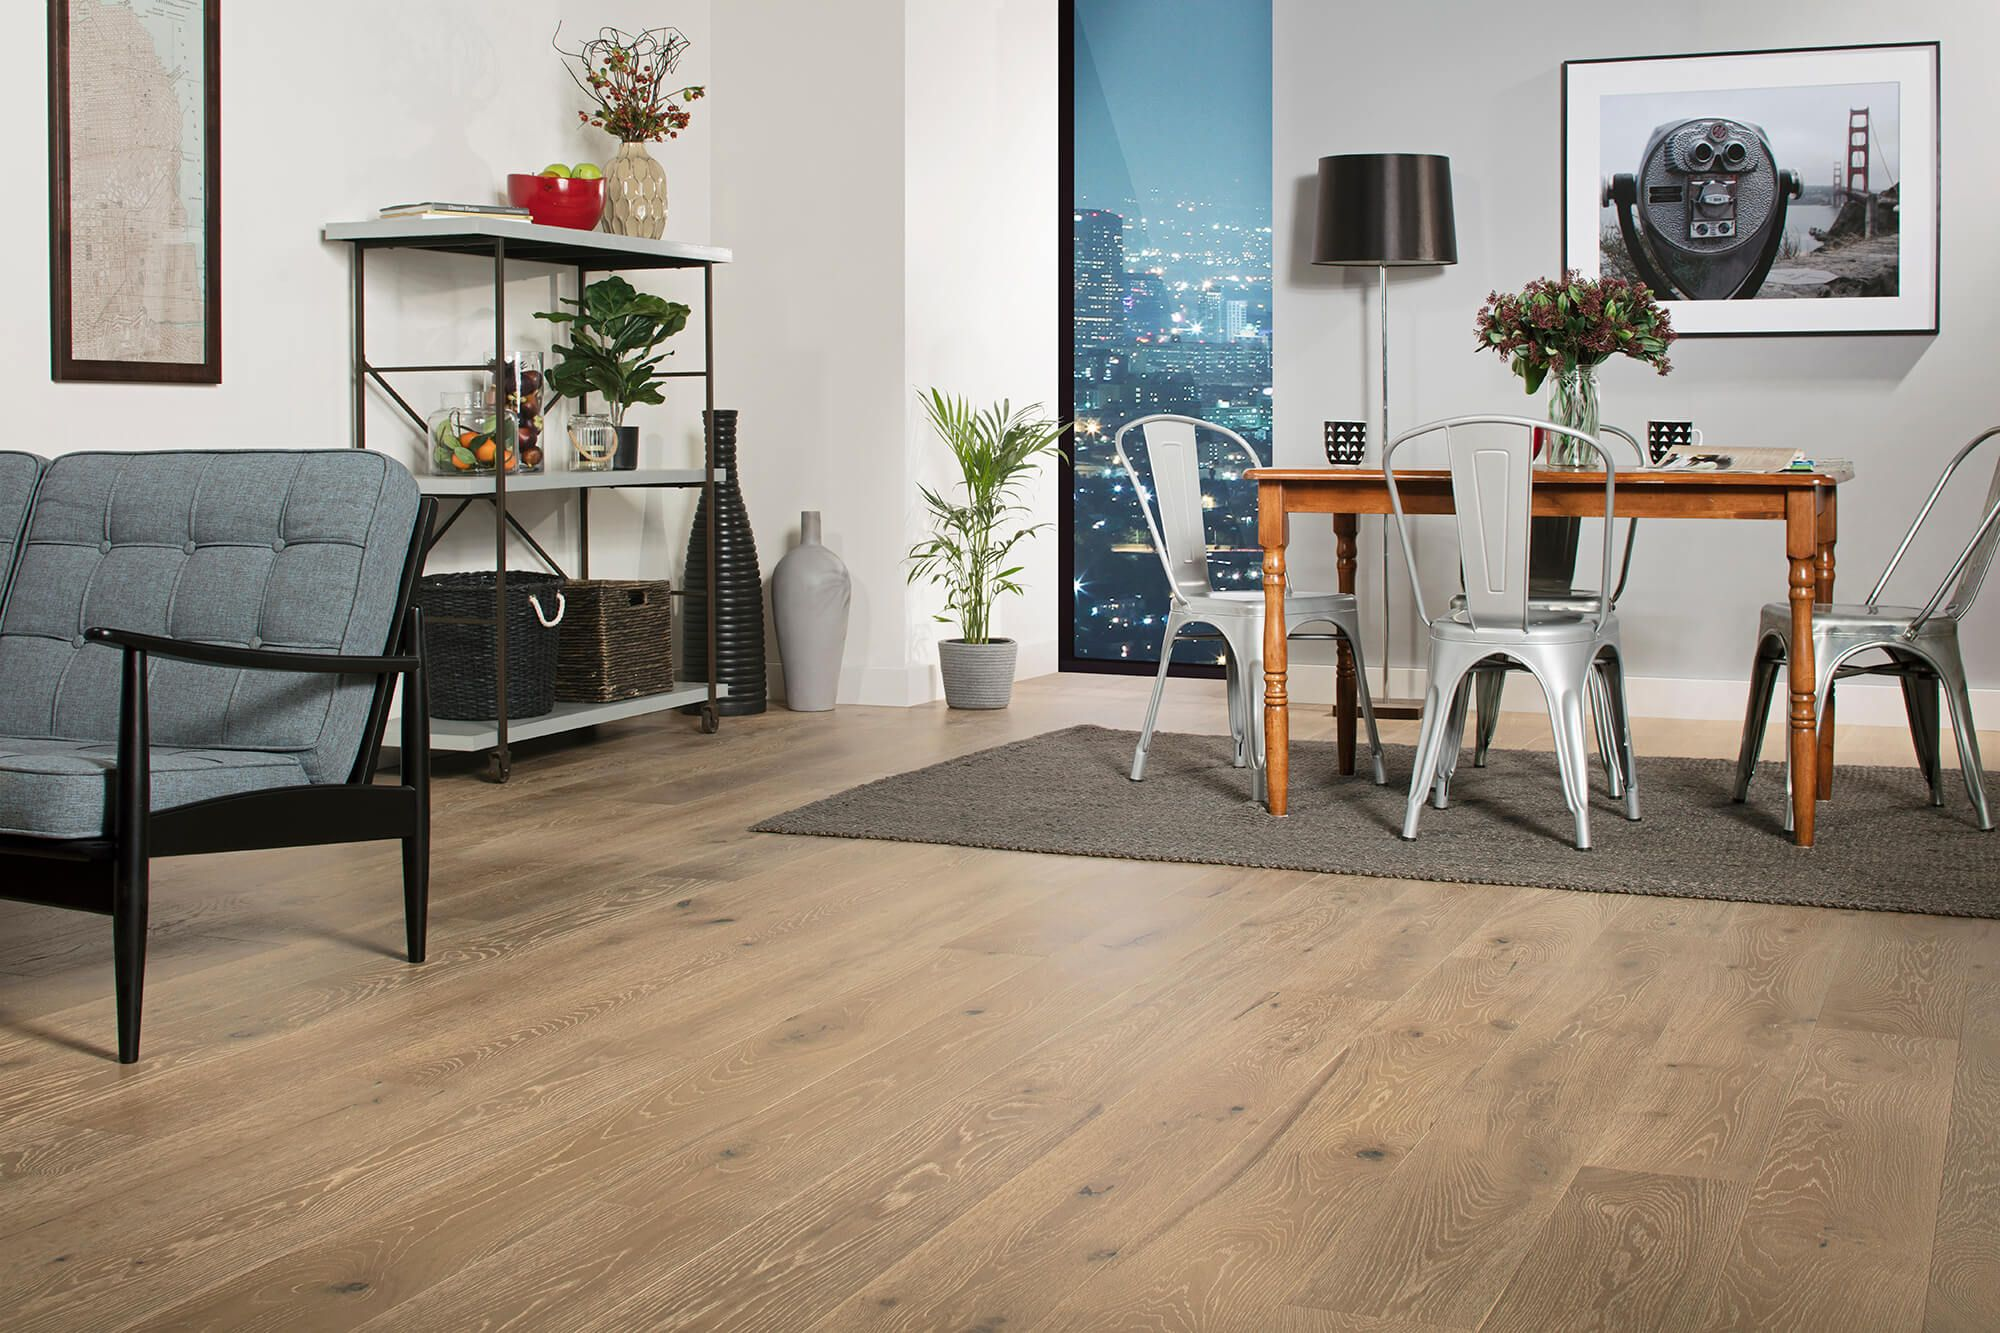 European Oak Flooring From The Experts At Mr Floor Melbourne Will